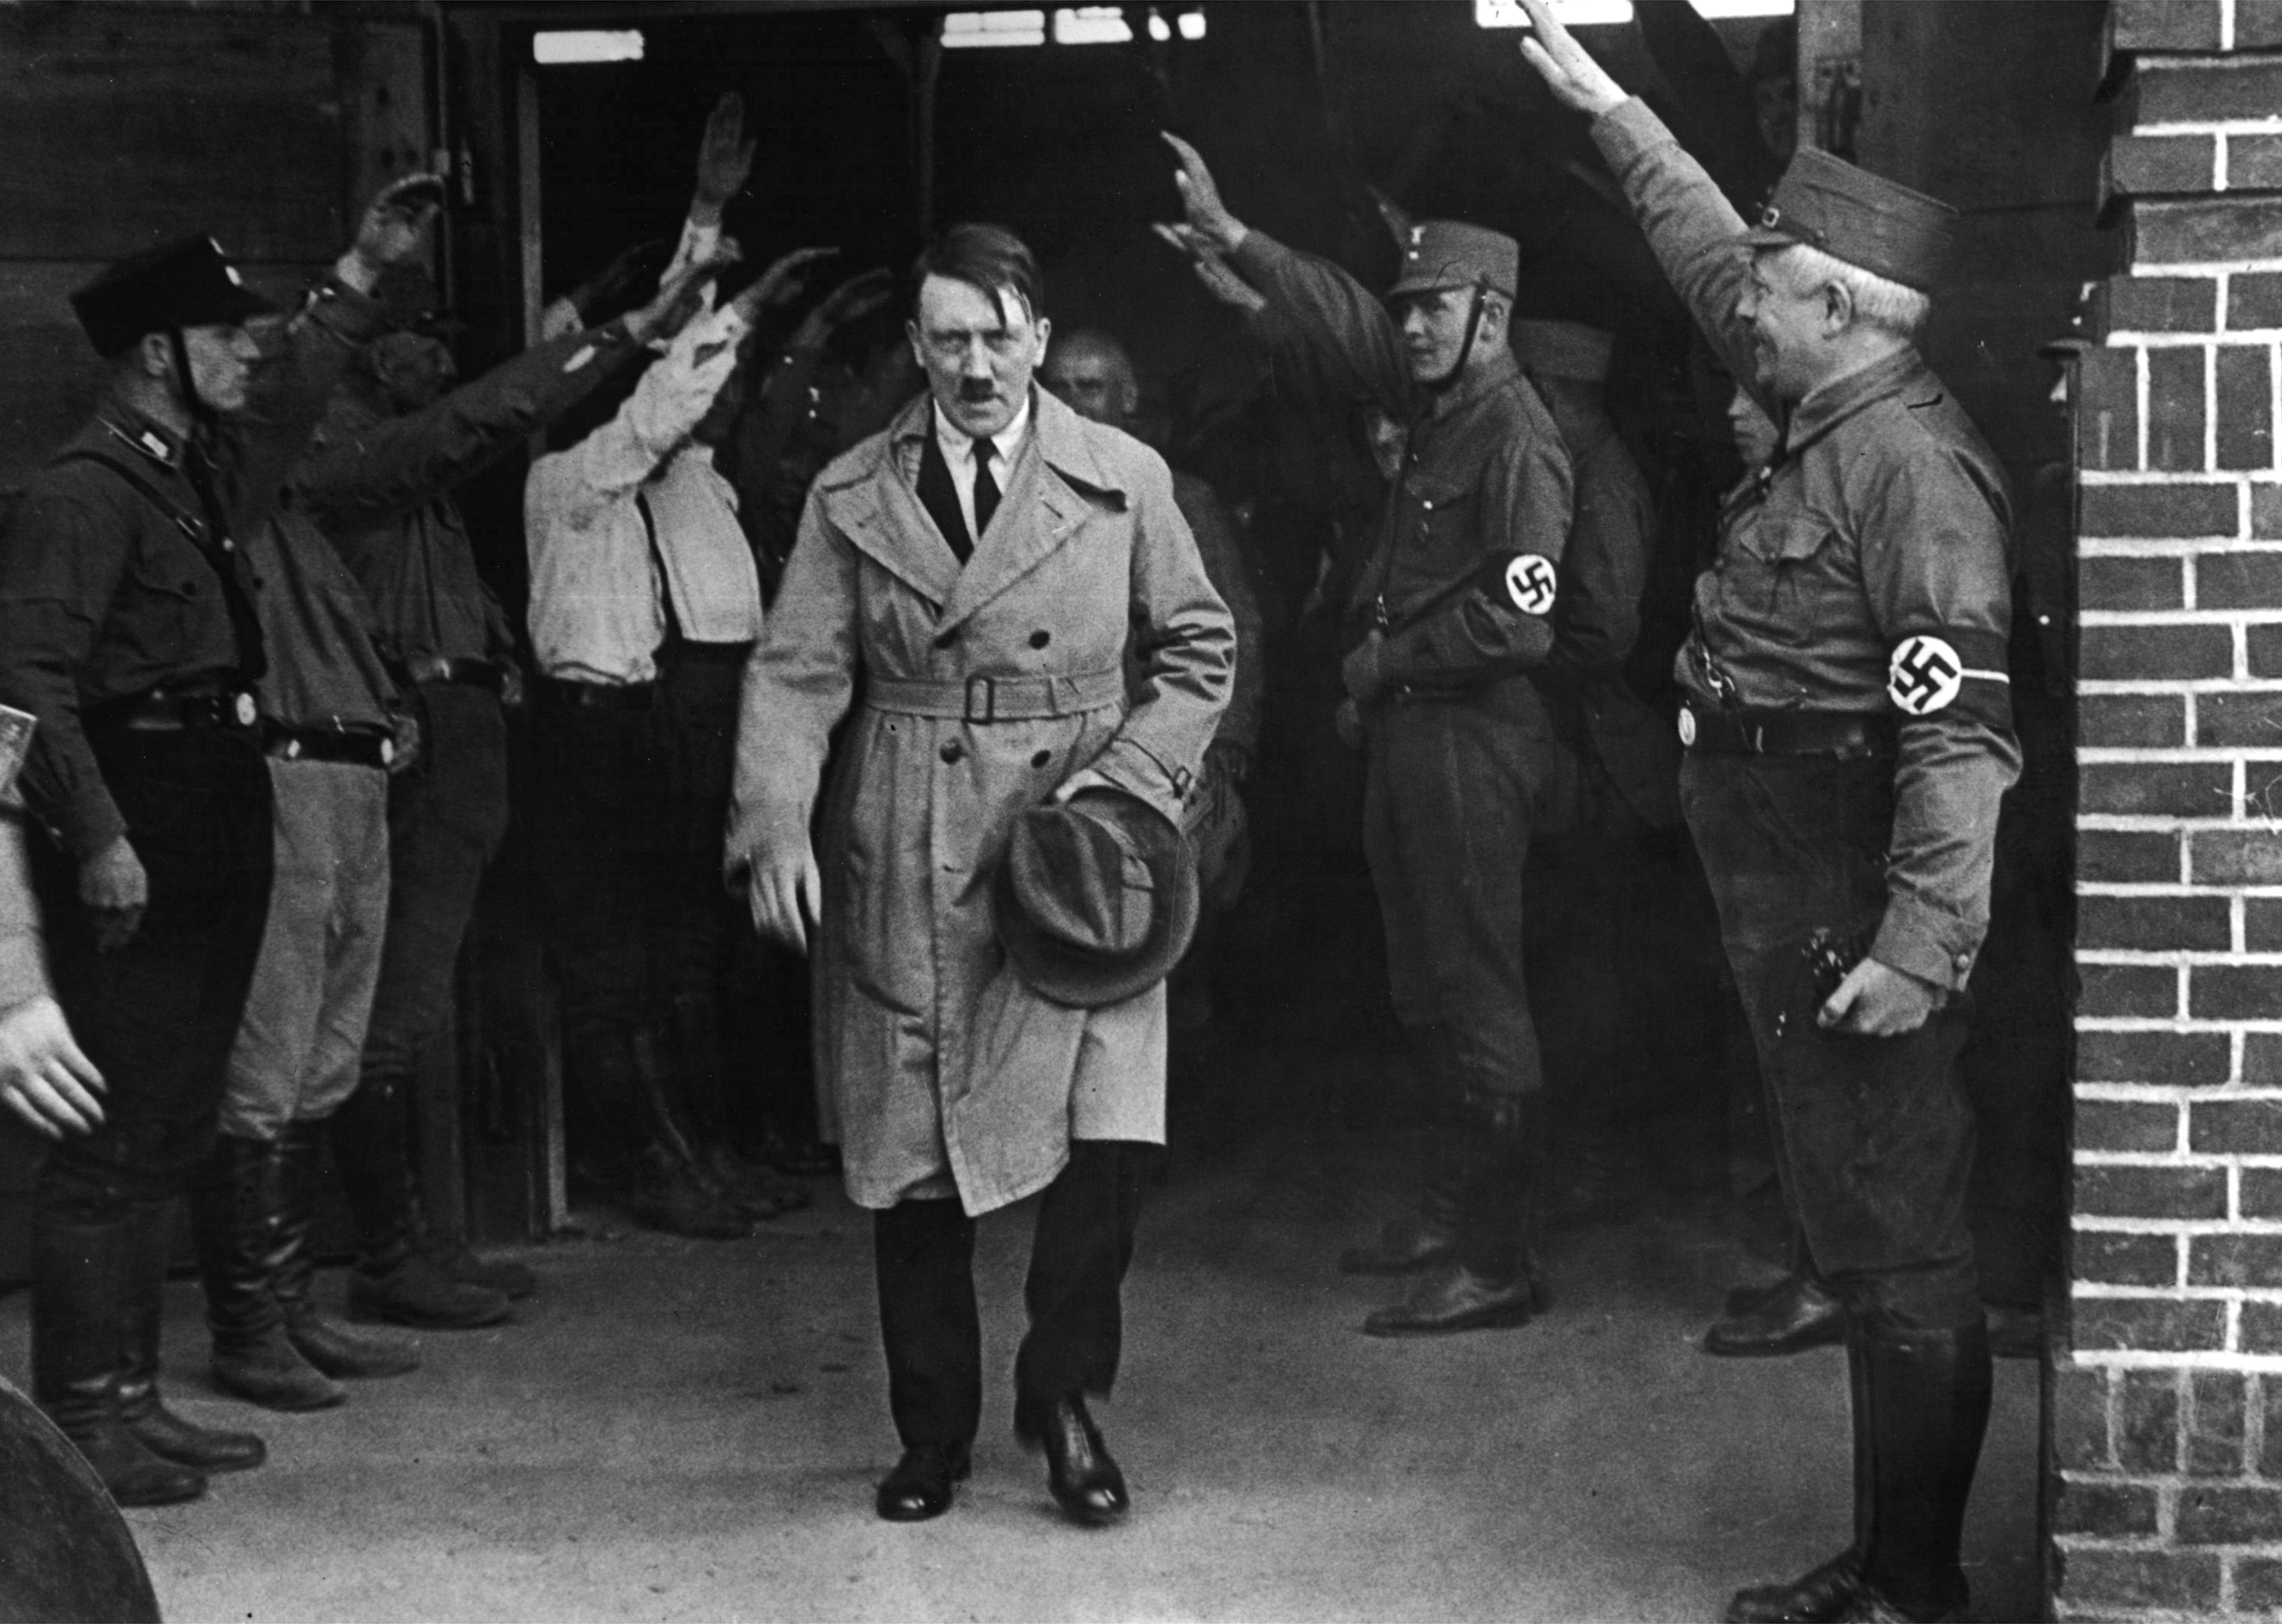 FILE - In this Dec. 5, 1931 file photo Adolf Hitler, leader of the National Socialists, emerges from the party's Munich headquarters. Historical documents show Adolf Hitler enjoyed special treatment, including plentiful supplies of beer, during his time in Landsberg prison.  (AP Photo/file)